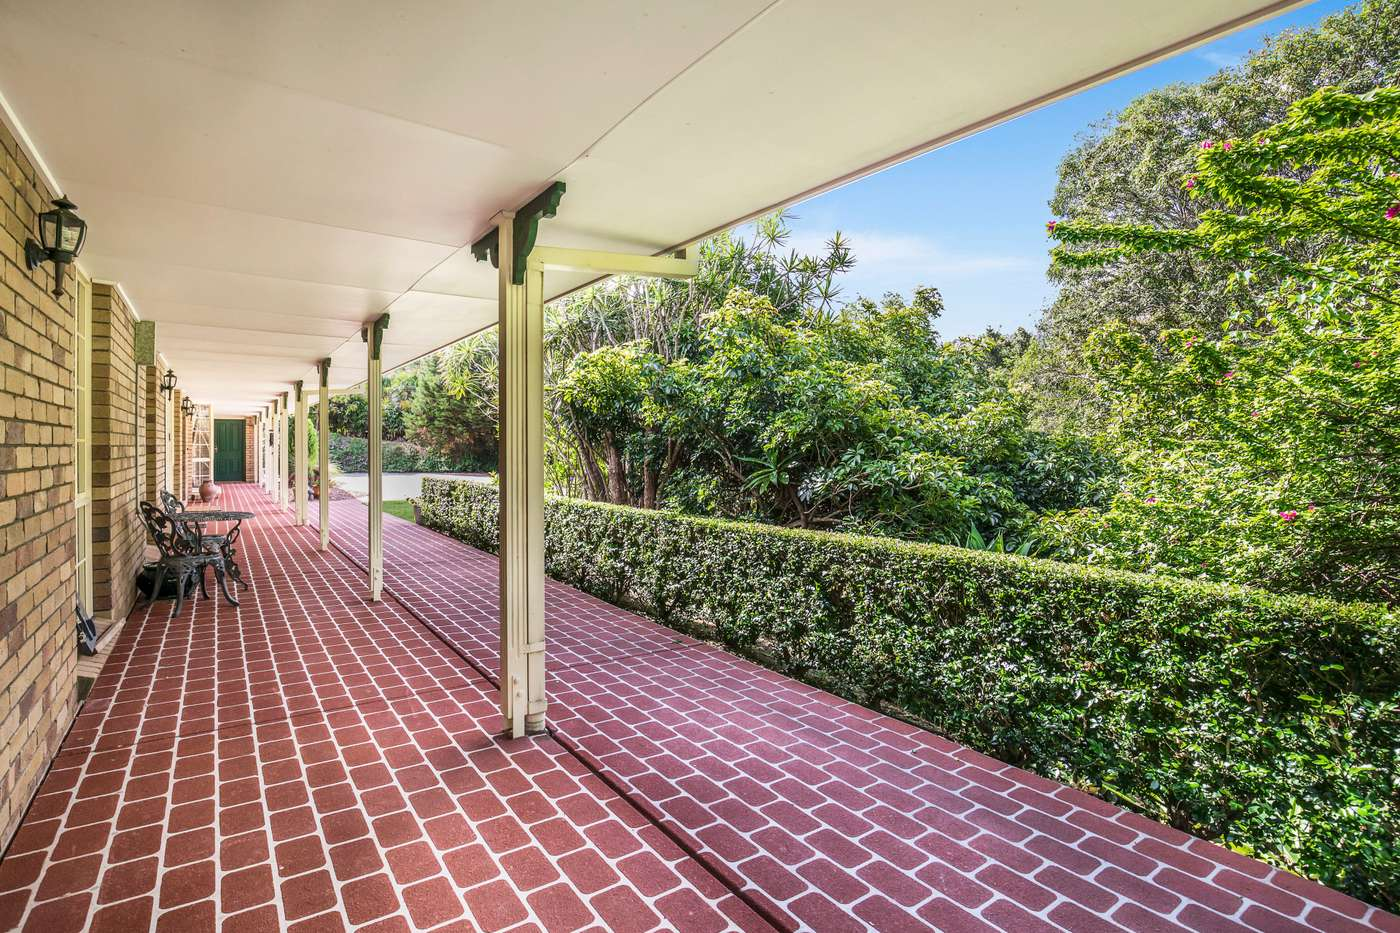 Main view of Homely house listing, 4 Birdwood Drive, Samford Valley, QLD 4520